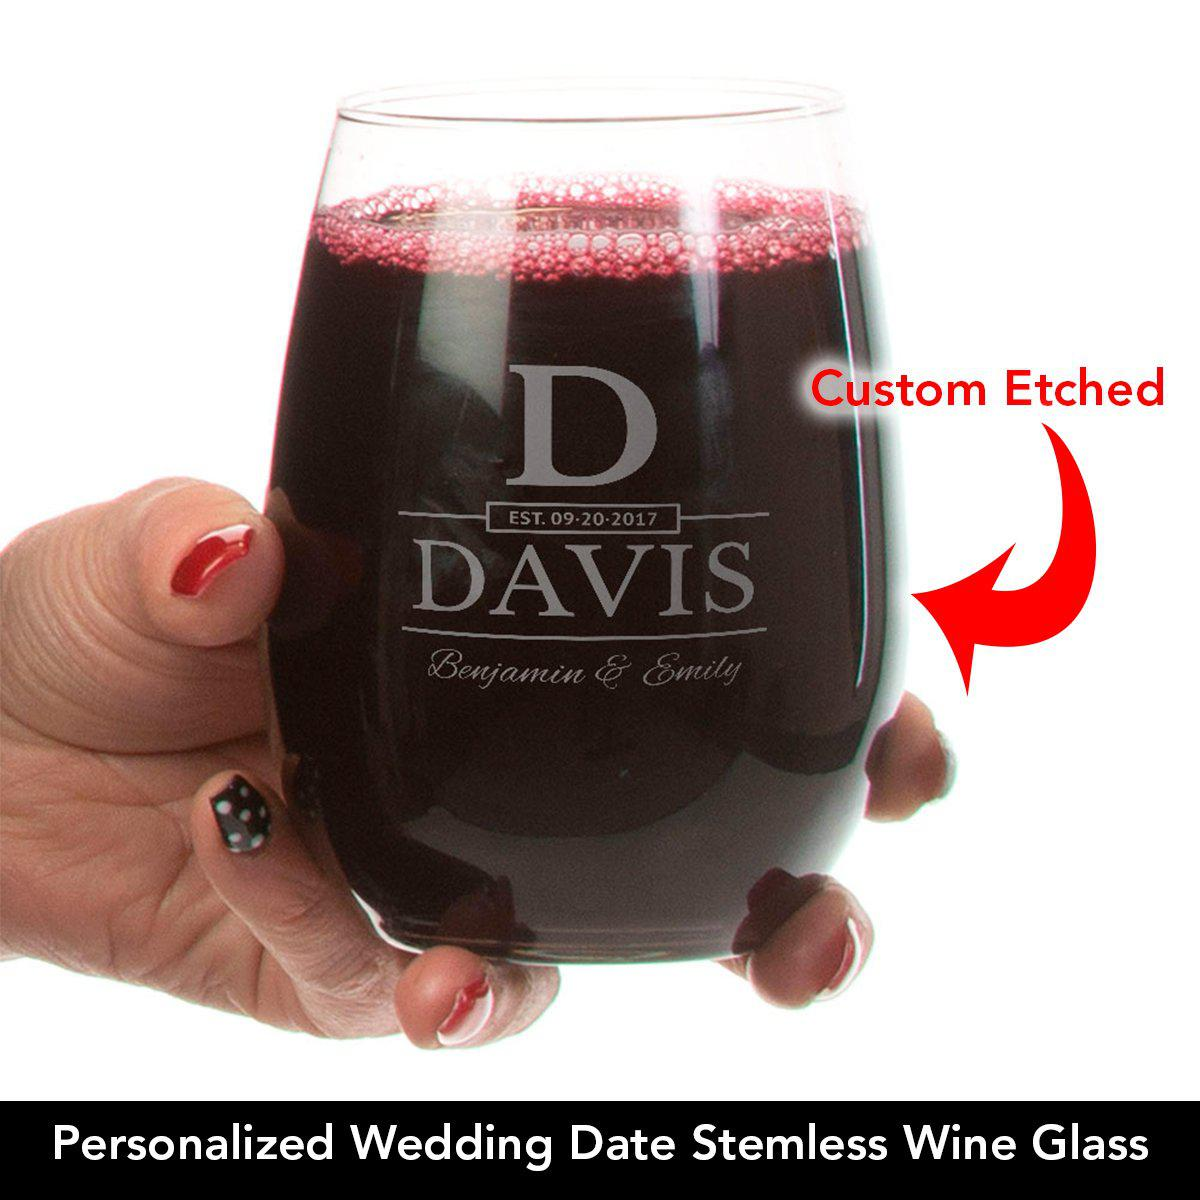 Wedding Date - Personalized Stemless Wine Glass